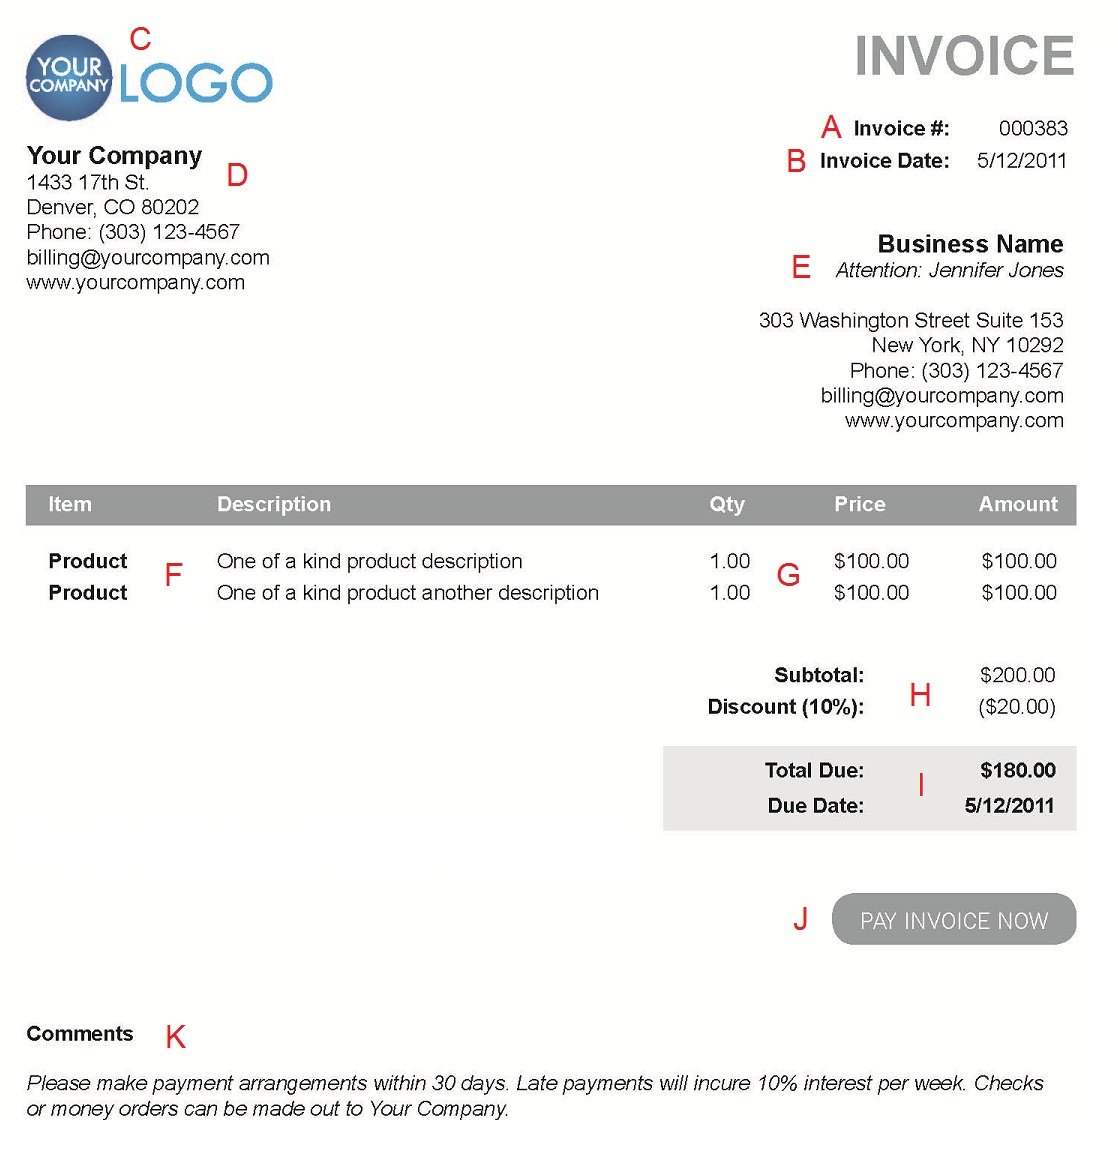 Coolmathgamesus  Pleasing The  Different Sections Of An Electronic Payment Invoice With Magnificent A  With Astonishing Examples Of Invoices For Services Also Best Invoicing Software For Freelancers In Addition Invoice Apps For Ipad And Invoice For Work As Well As Toyota Dealer Invoice Additionally Woocommerce Invoice Plugin From Paysimplecom With Coolmathgamesus  Magnificent The  Different Sections Of An Electronic Payment Invoice With Astonishing A  And Pleasing Examples Of Invoices For Services Also Best Invoicing Software For Freelancers In Addition Invoice Apps For Ipad From Paysimplecom